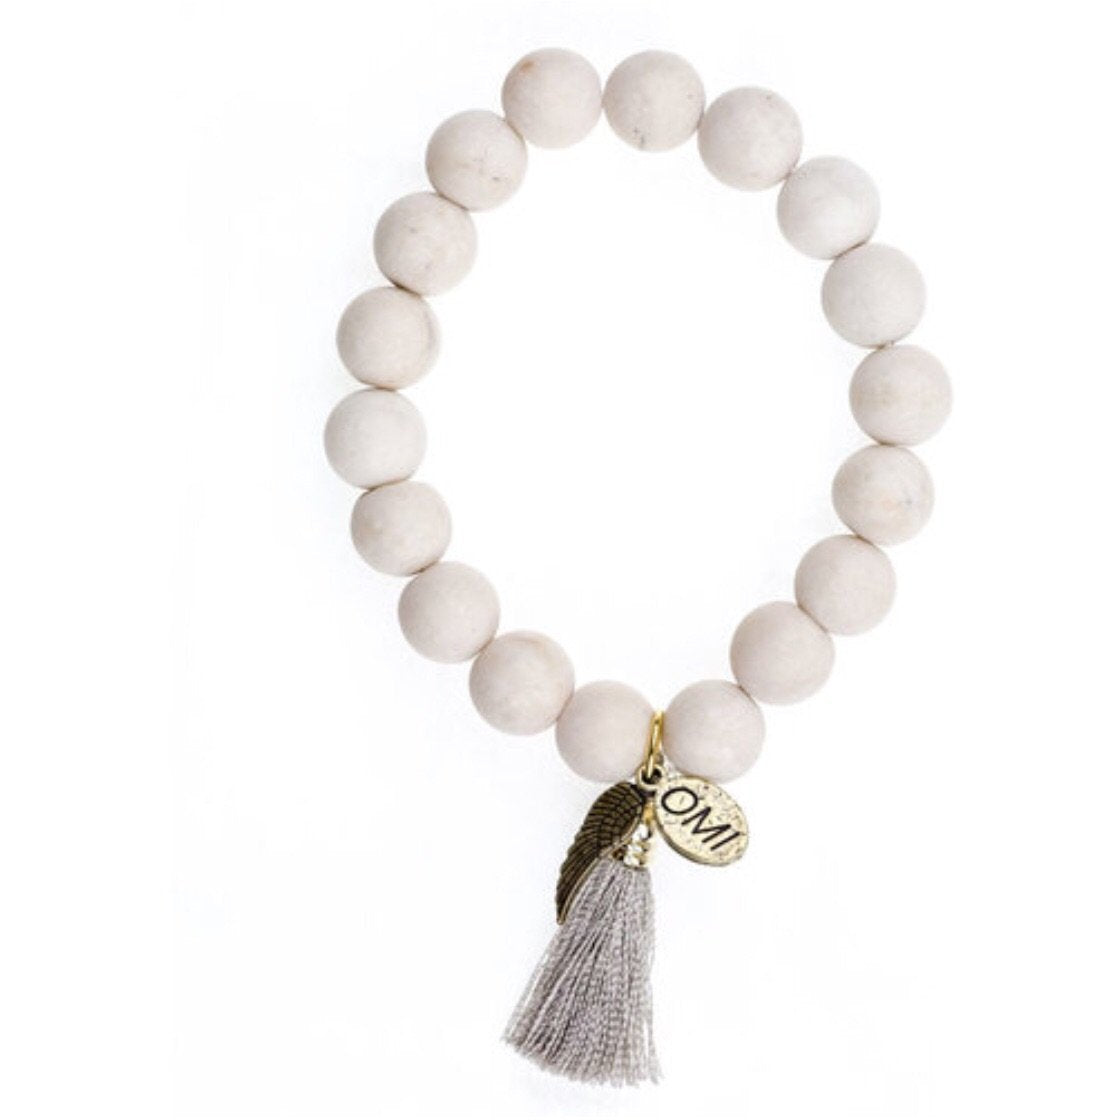 Barletta Stretch Bracelet Set by Omi Beads   Sold Out - Glamco Boutique